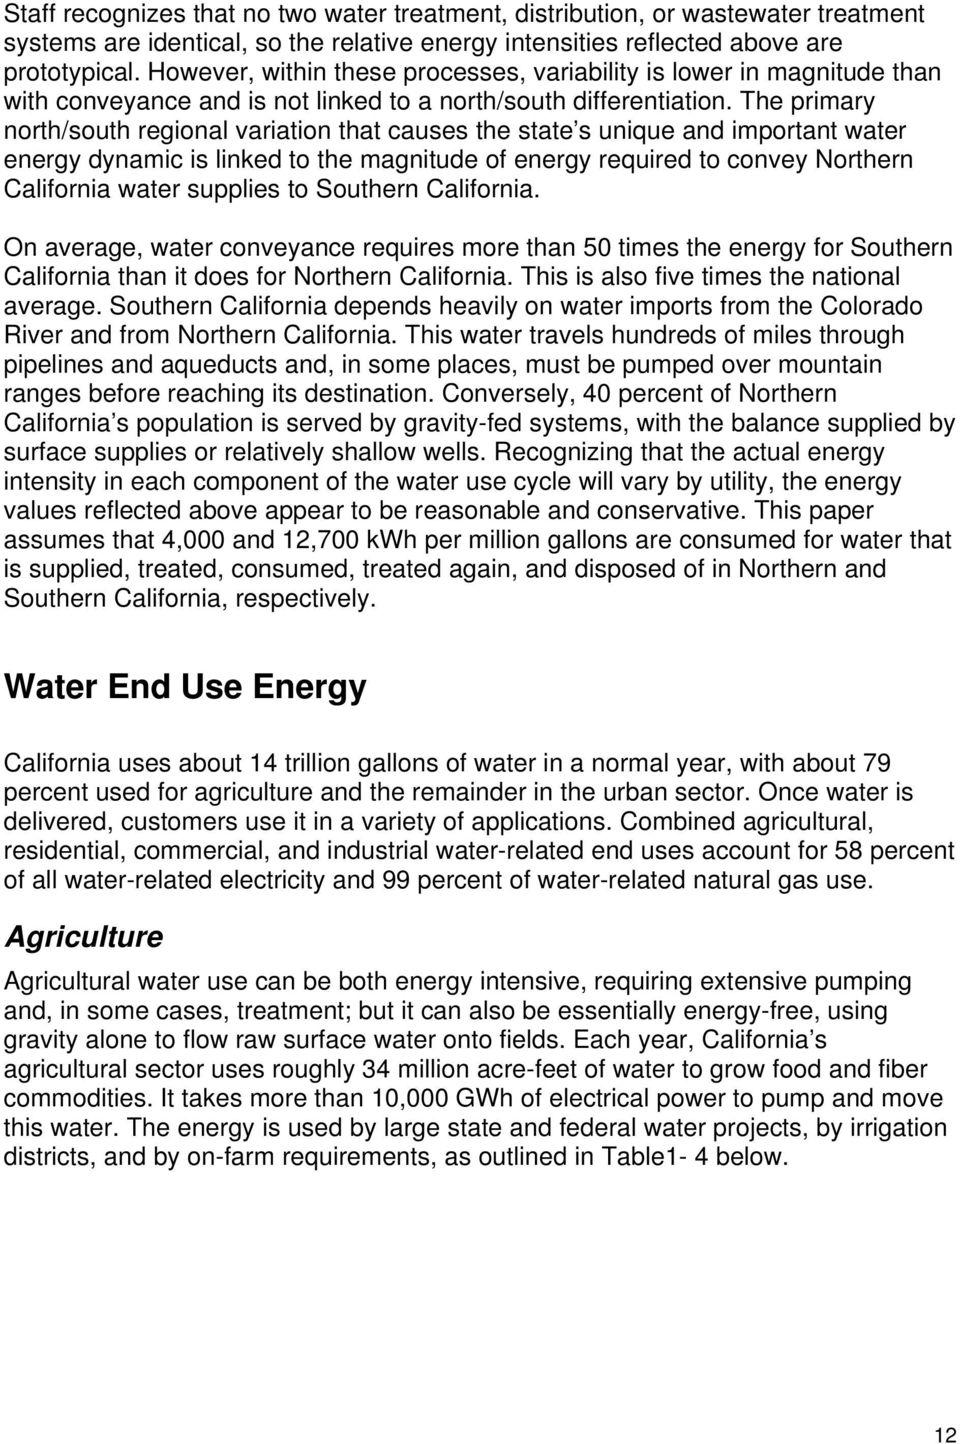 The primary north/south regional variation that causes the state s unique and important water energy dynamic is linked to the magnitude of energy required to convey Northern California water supplies